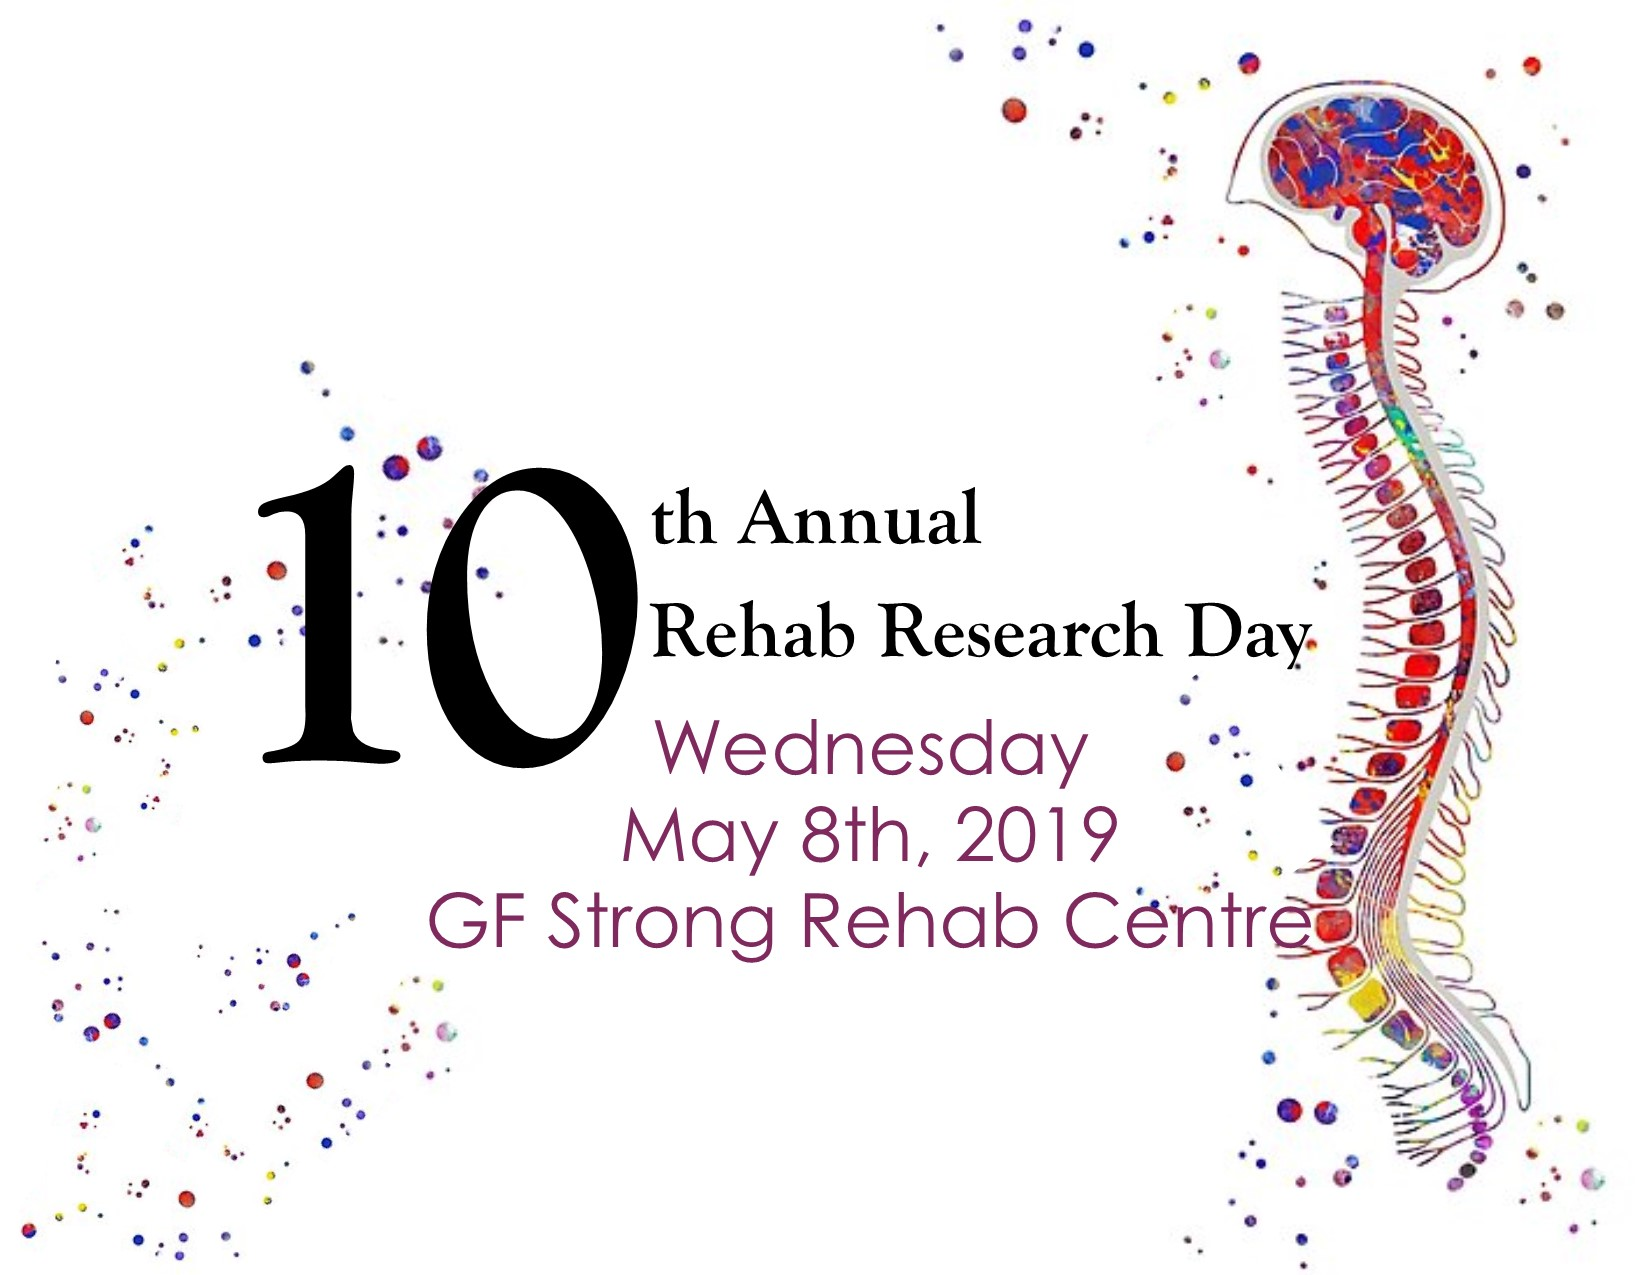 10th Annual Rehab Research Day